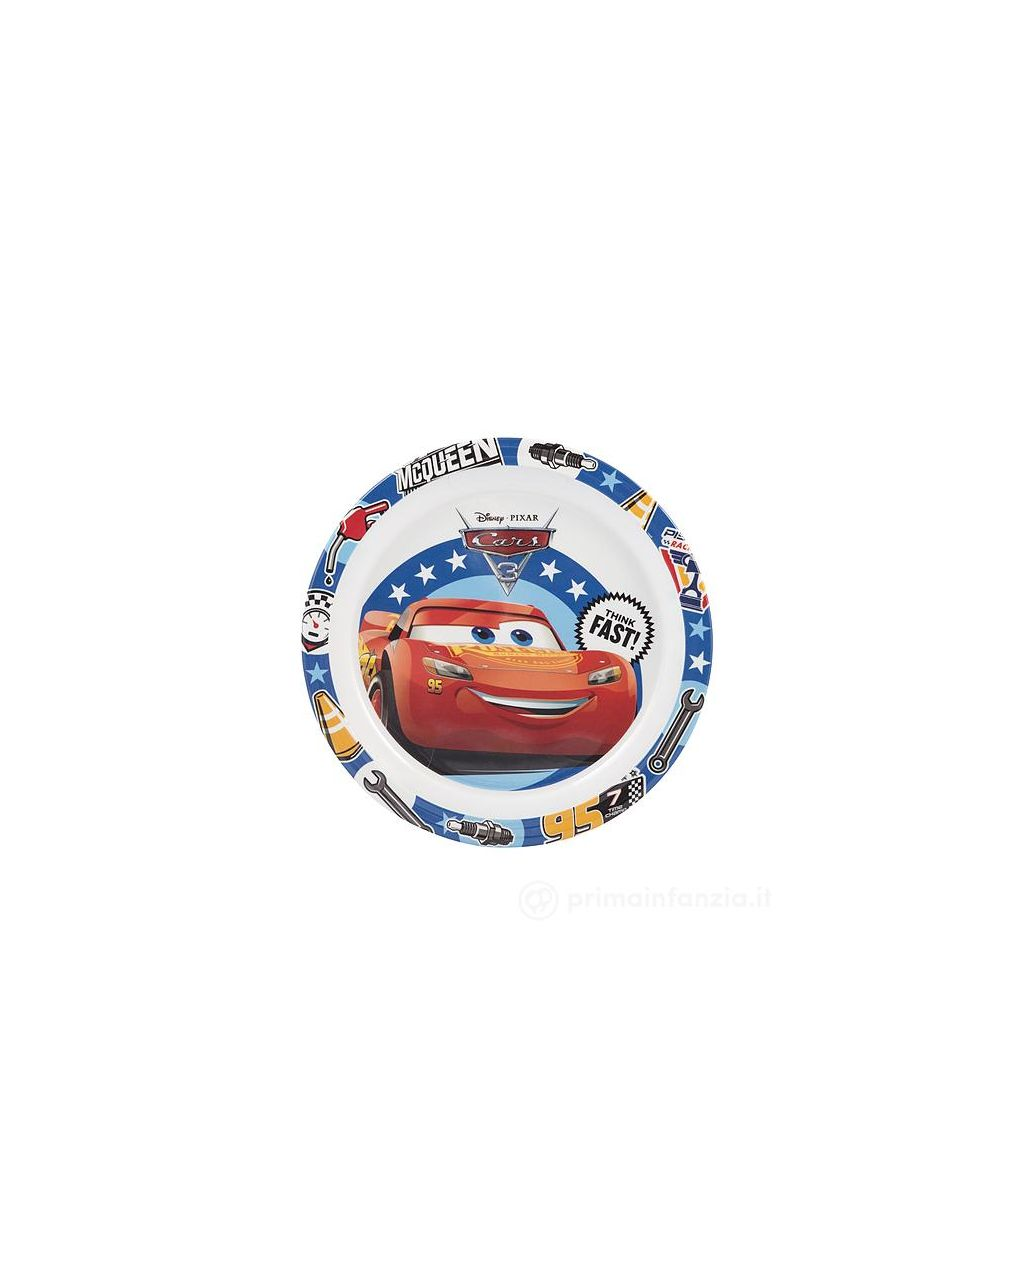 Piatto piano 21,5 cm cars3 disney - Disney, Lulabi Disney